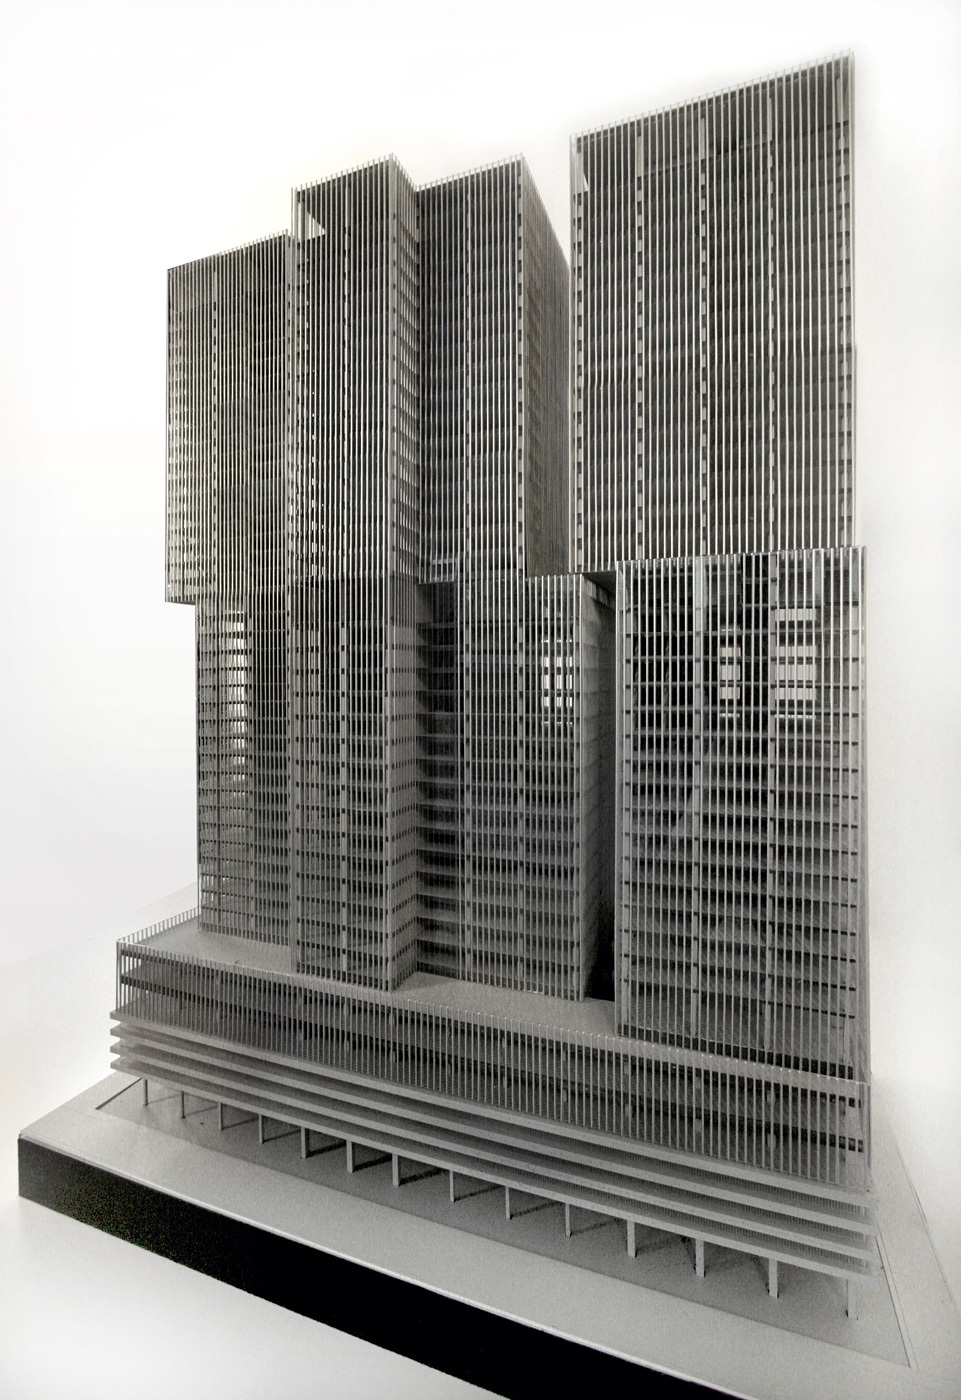 Model - South East. © OMA